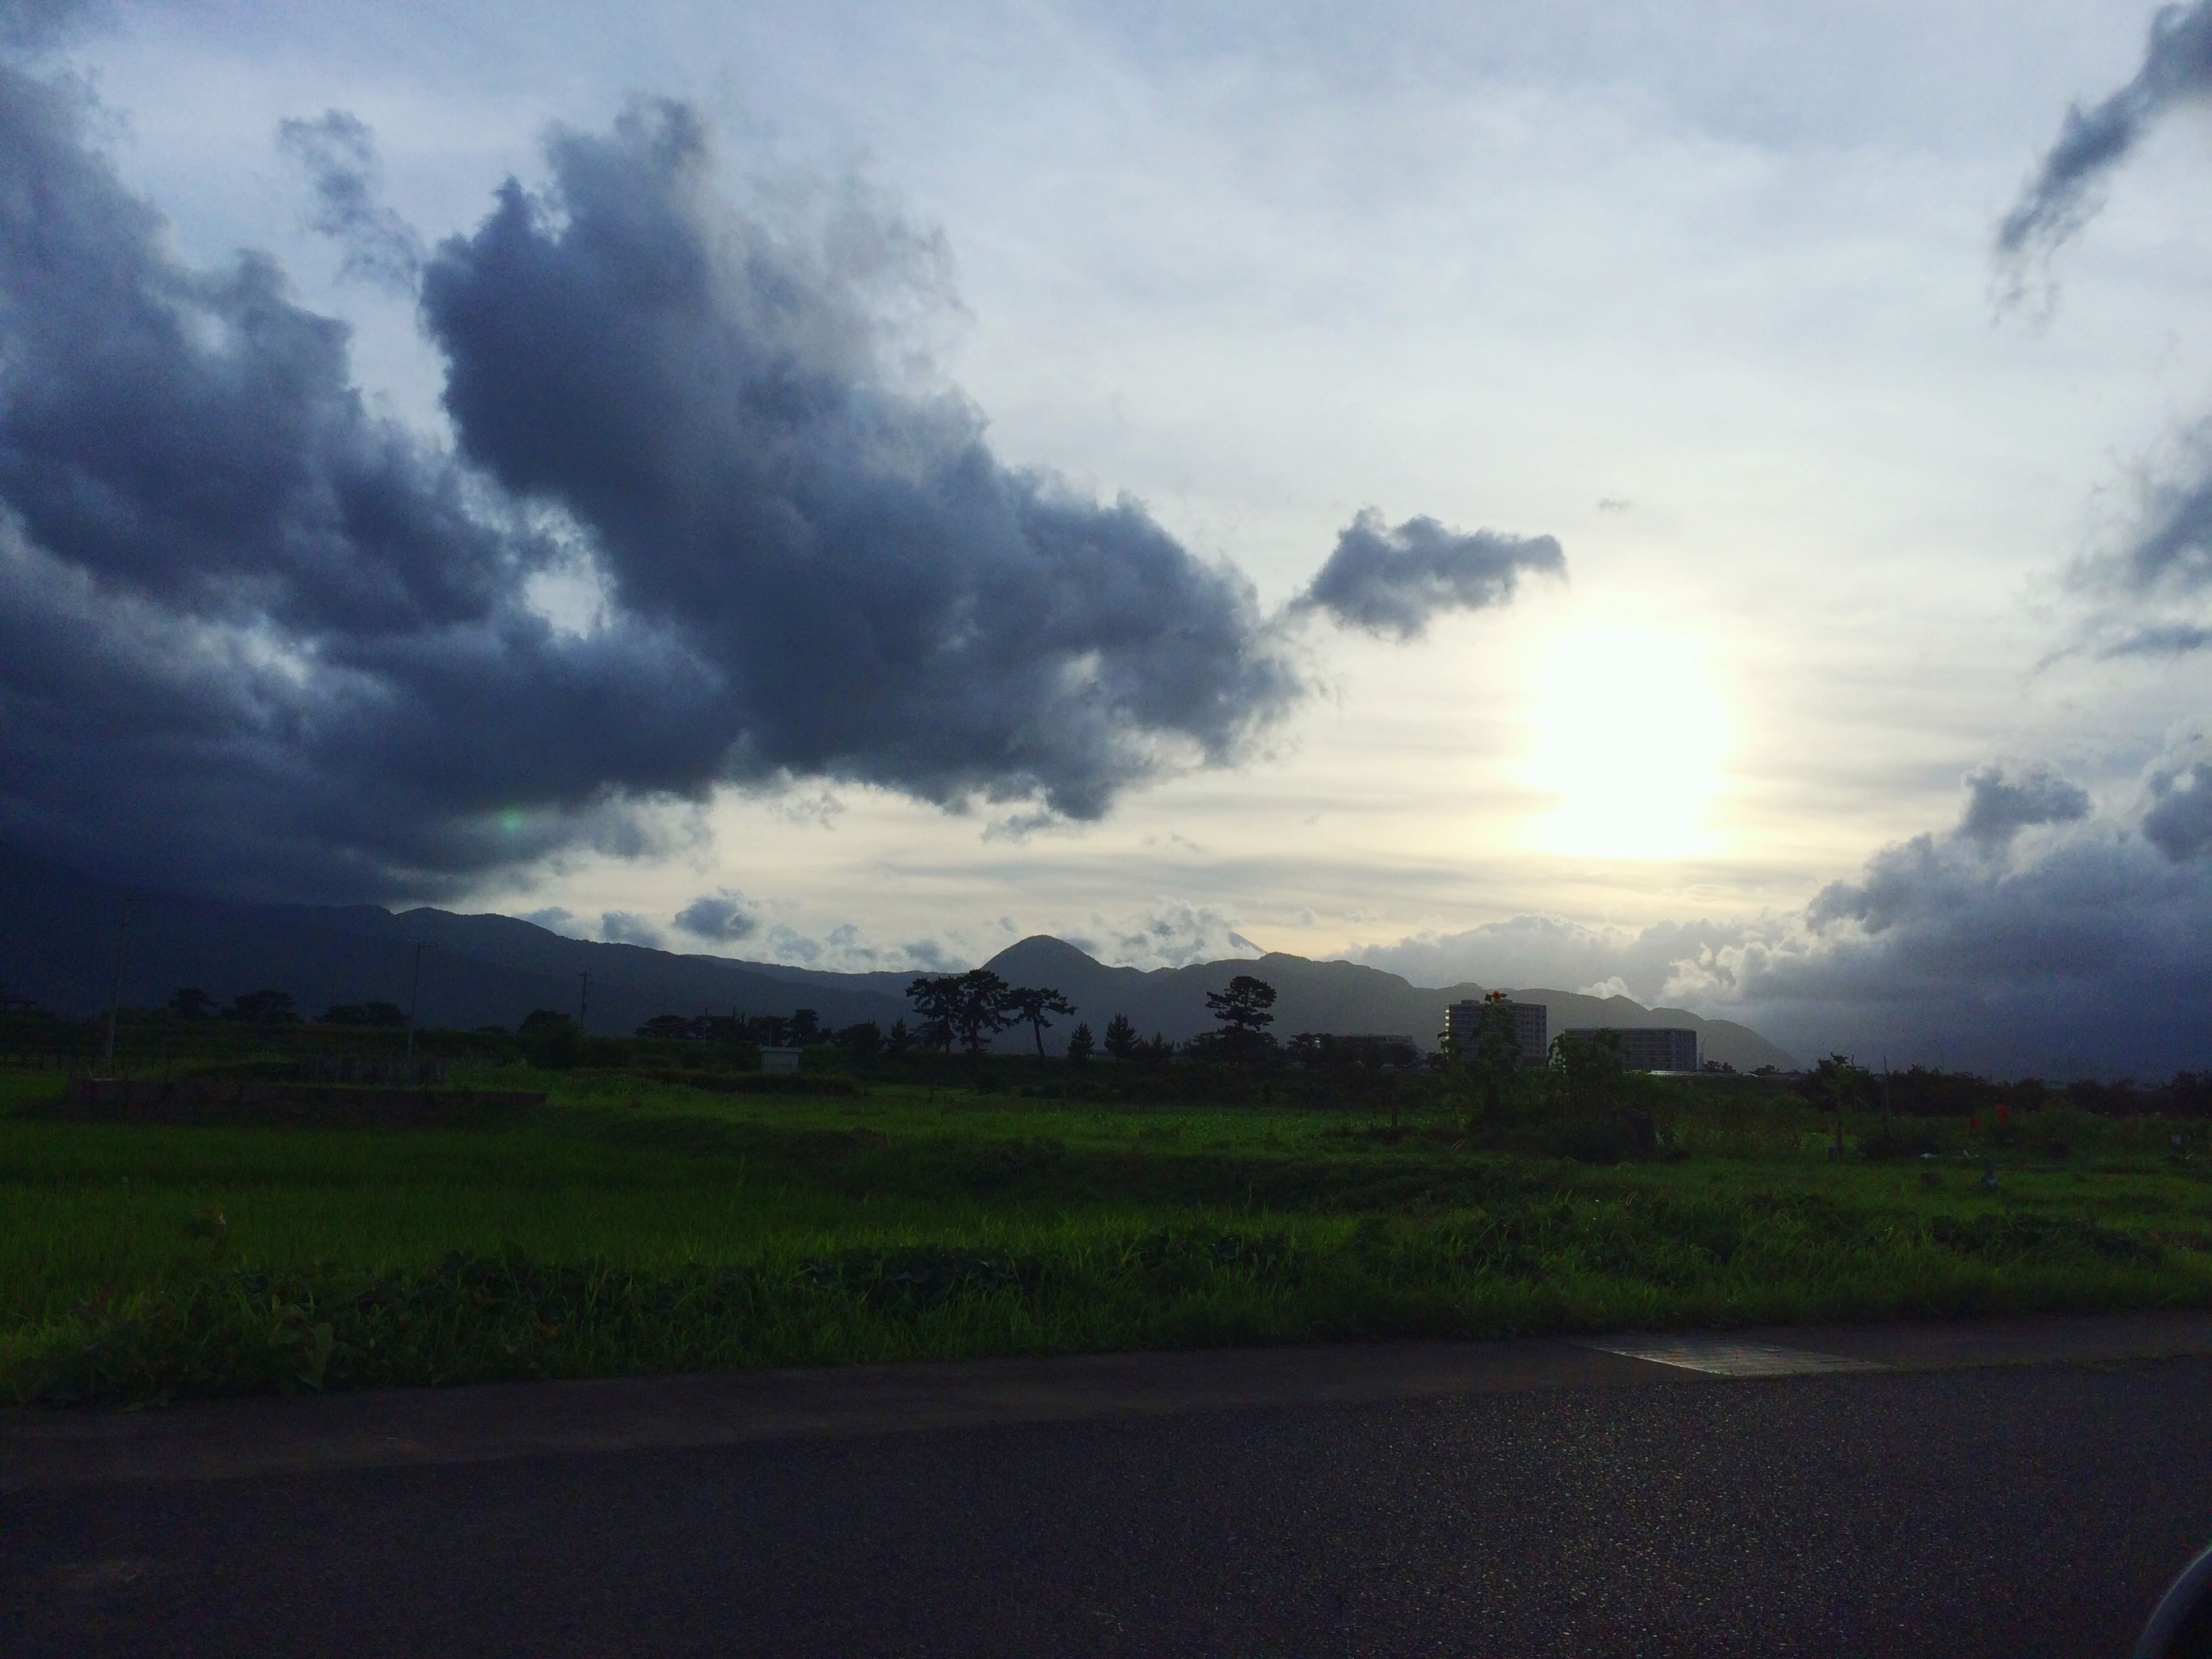 sky, cloud - sky, landscape, tranquil scene, tranquility, sun, scenics, cloudy, beauty in nature, sunbeam, road, nature, sunlight, cloud, field, sunset, mountain, weather, idyllic, grass